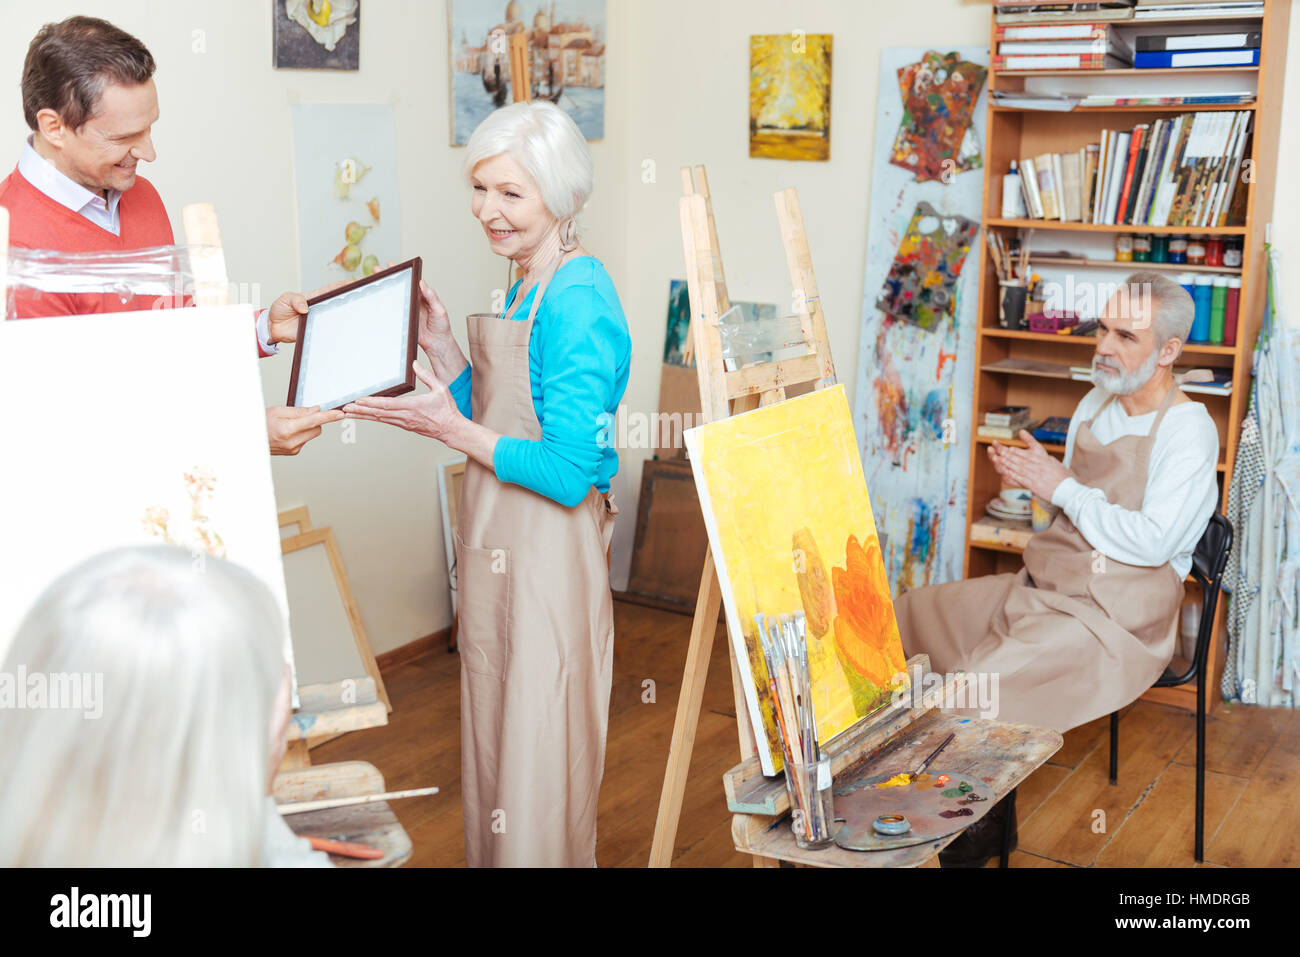 Young man giving artists diploma to woman - Stock Image